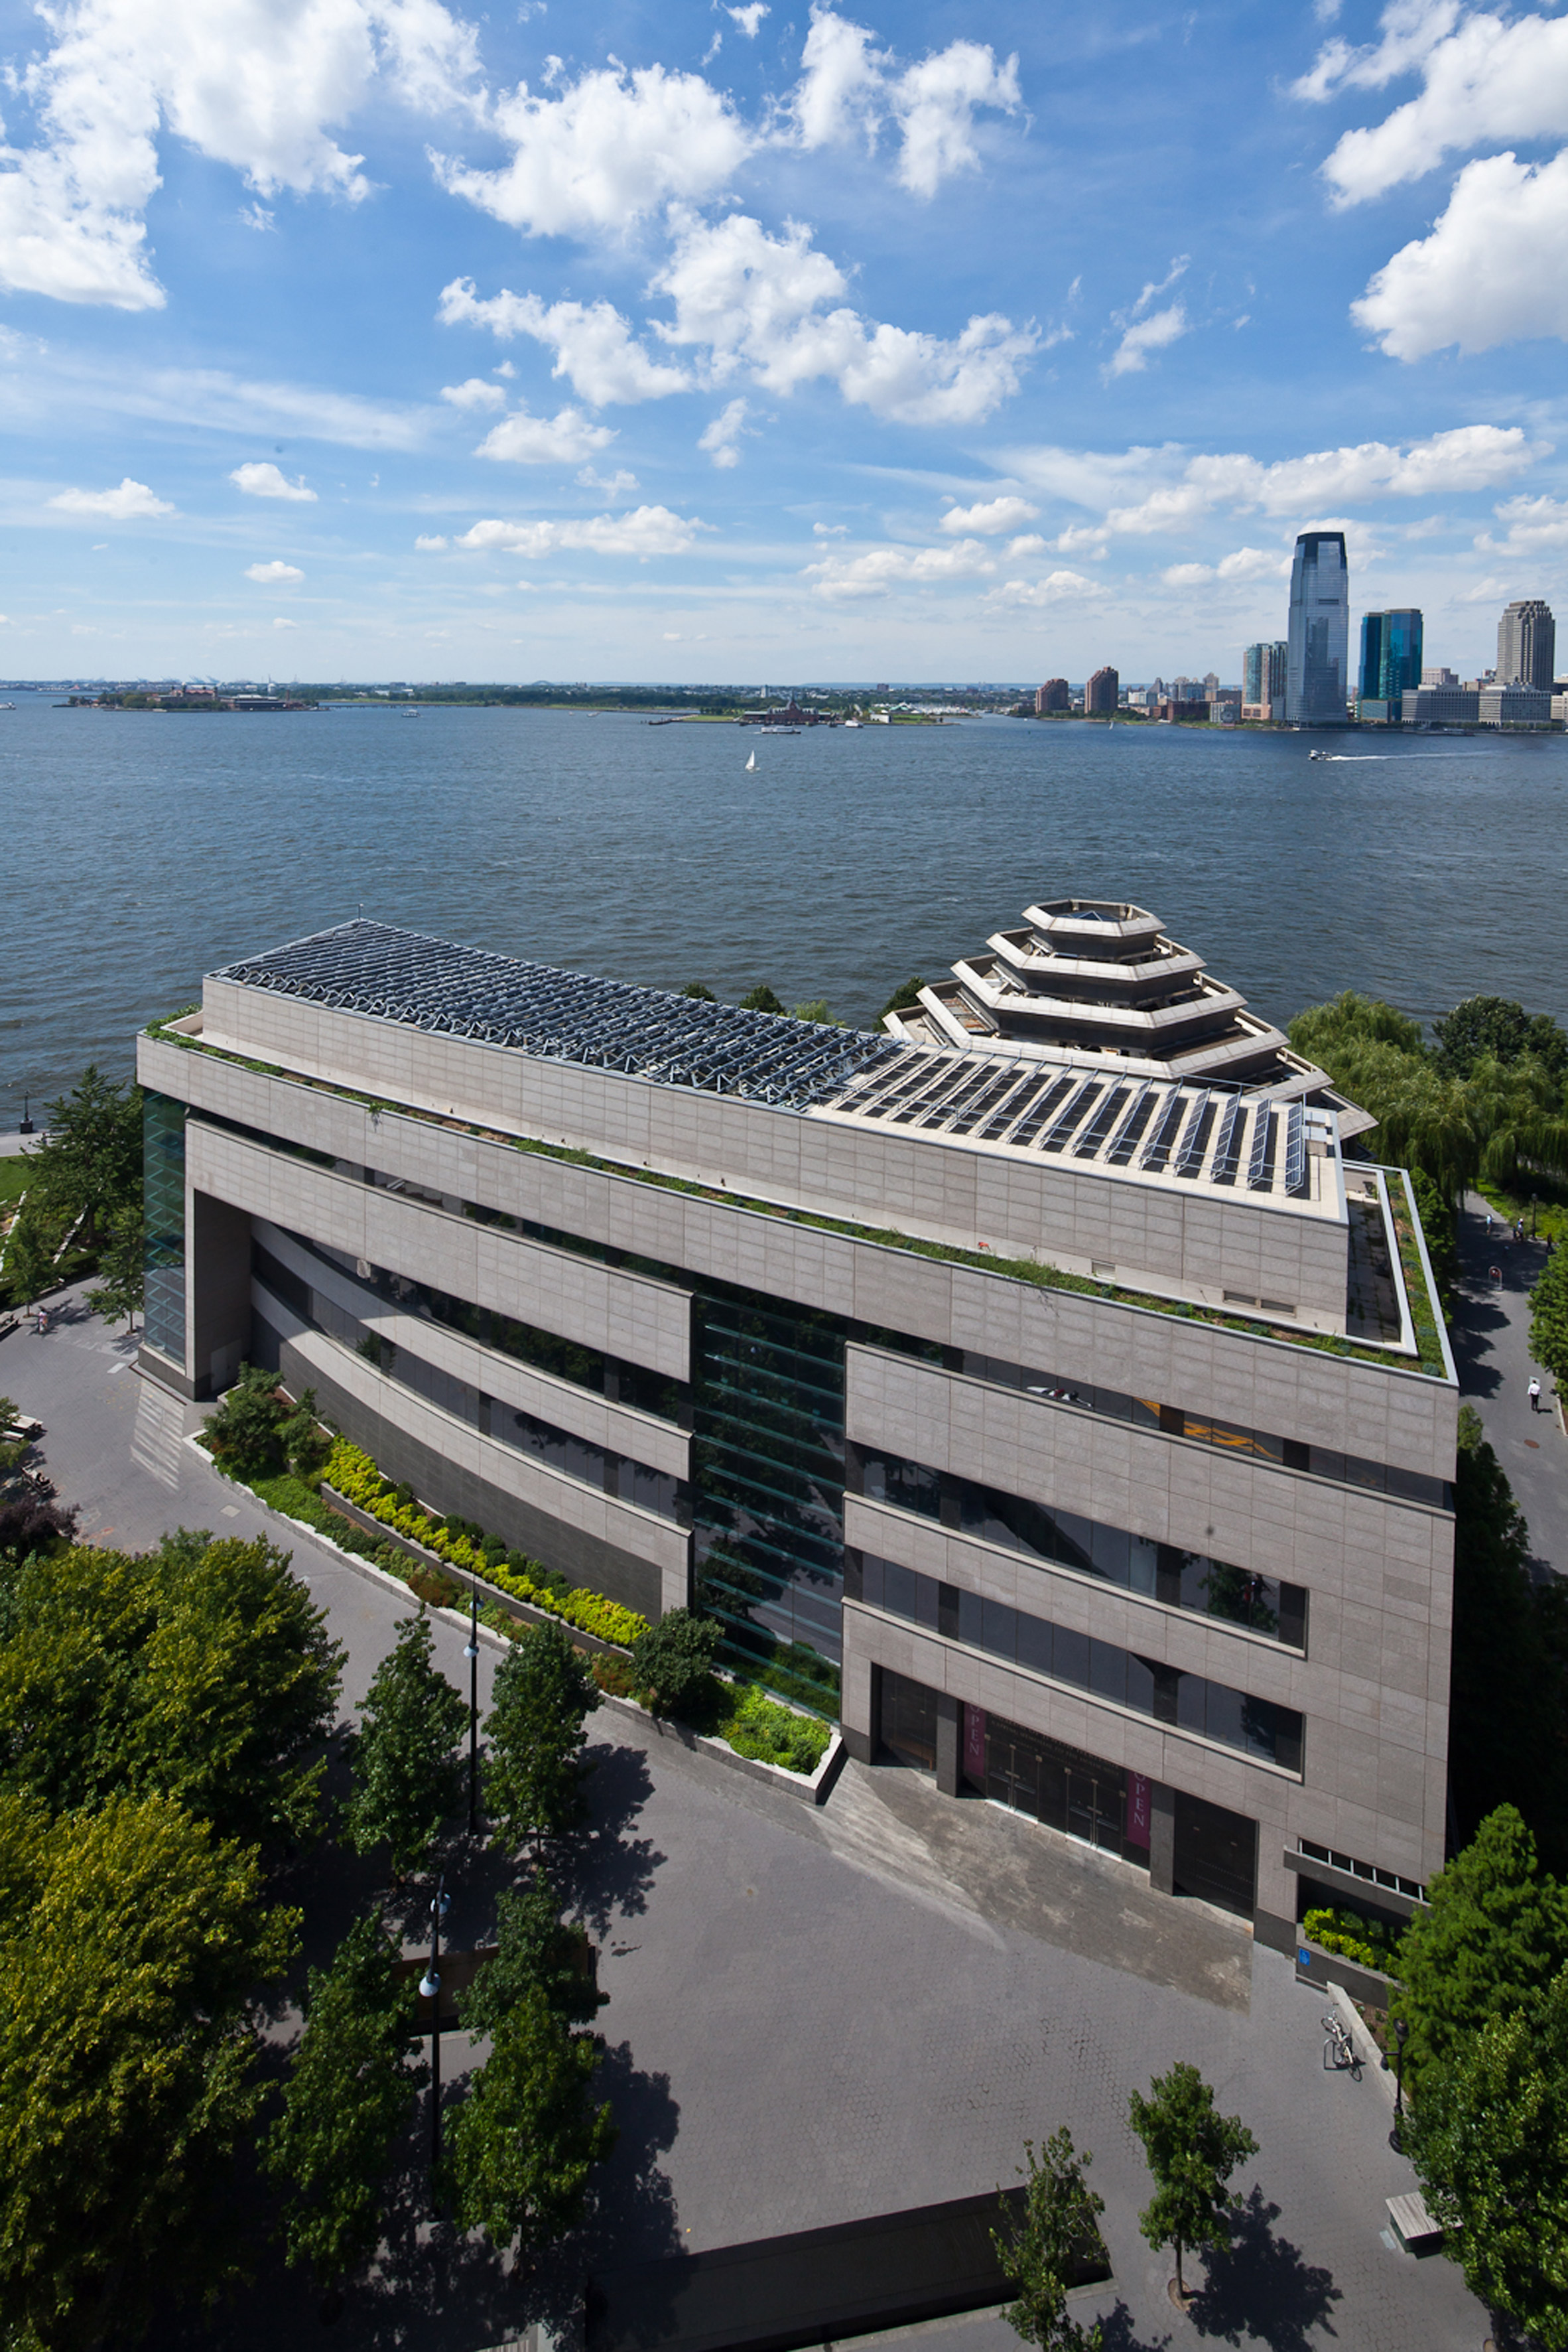 The Museum of Jewish Heritage by Kevin Roche and John Dinkeloo